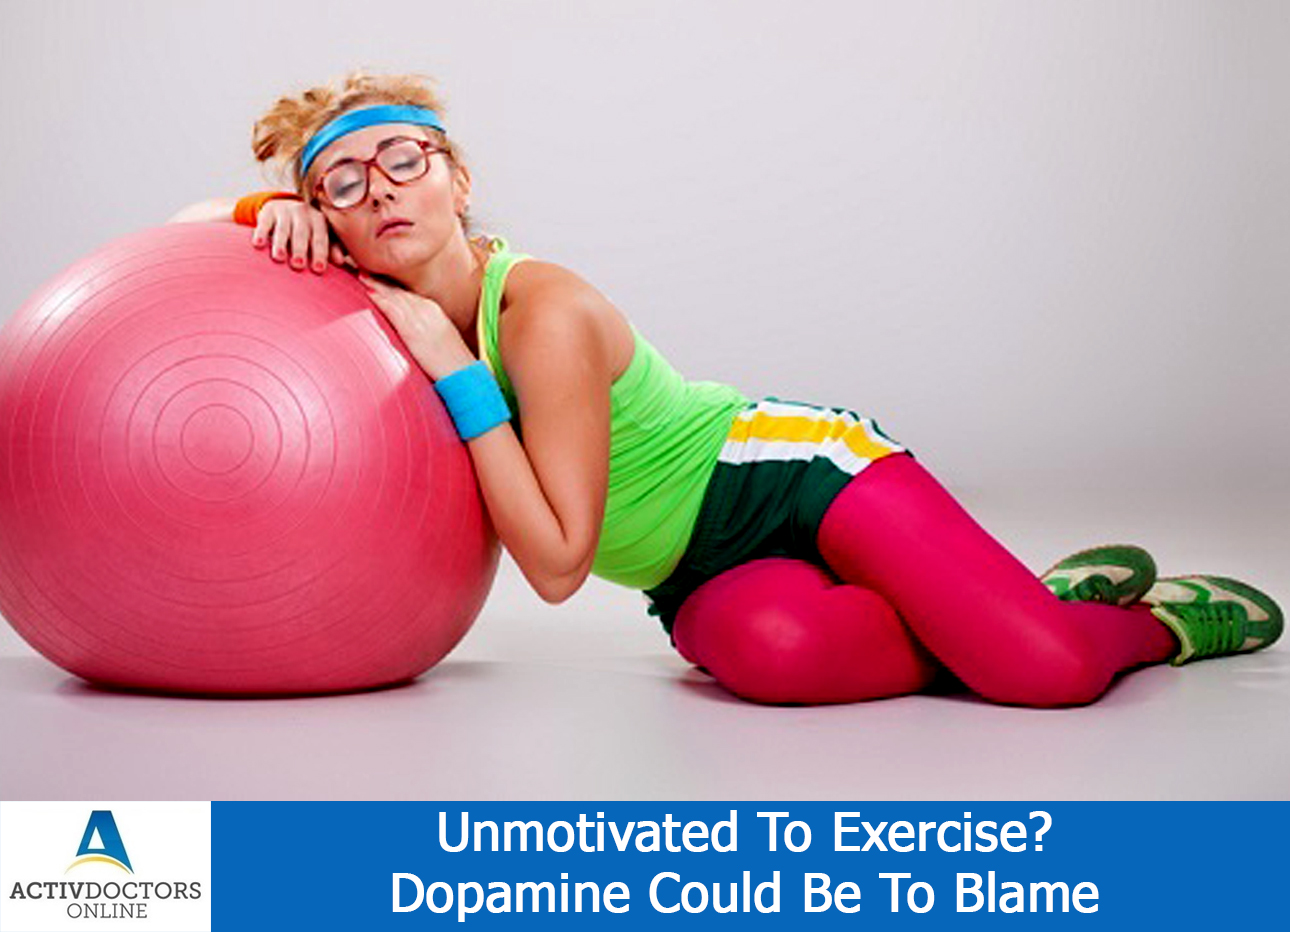 Unmotivated To Exercise? Dopamine Could Be To Blame